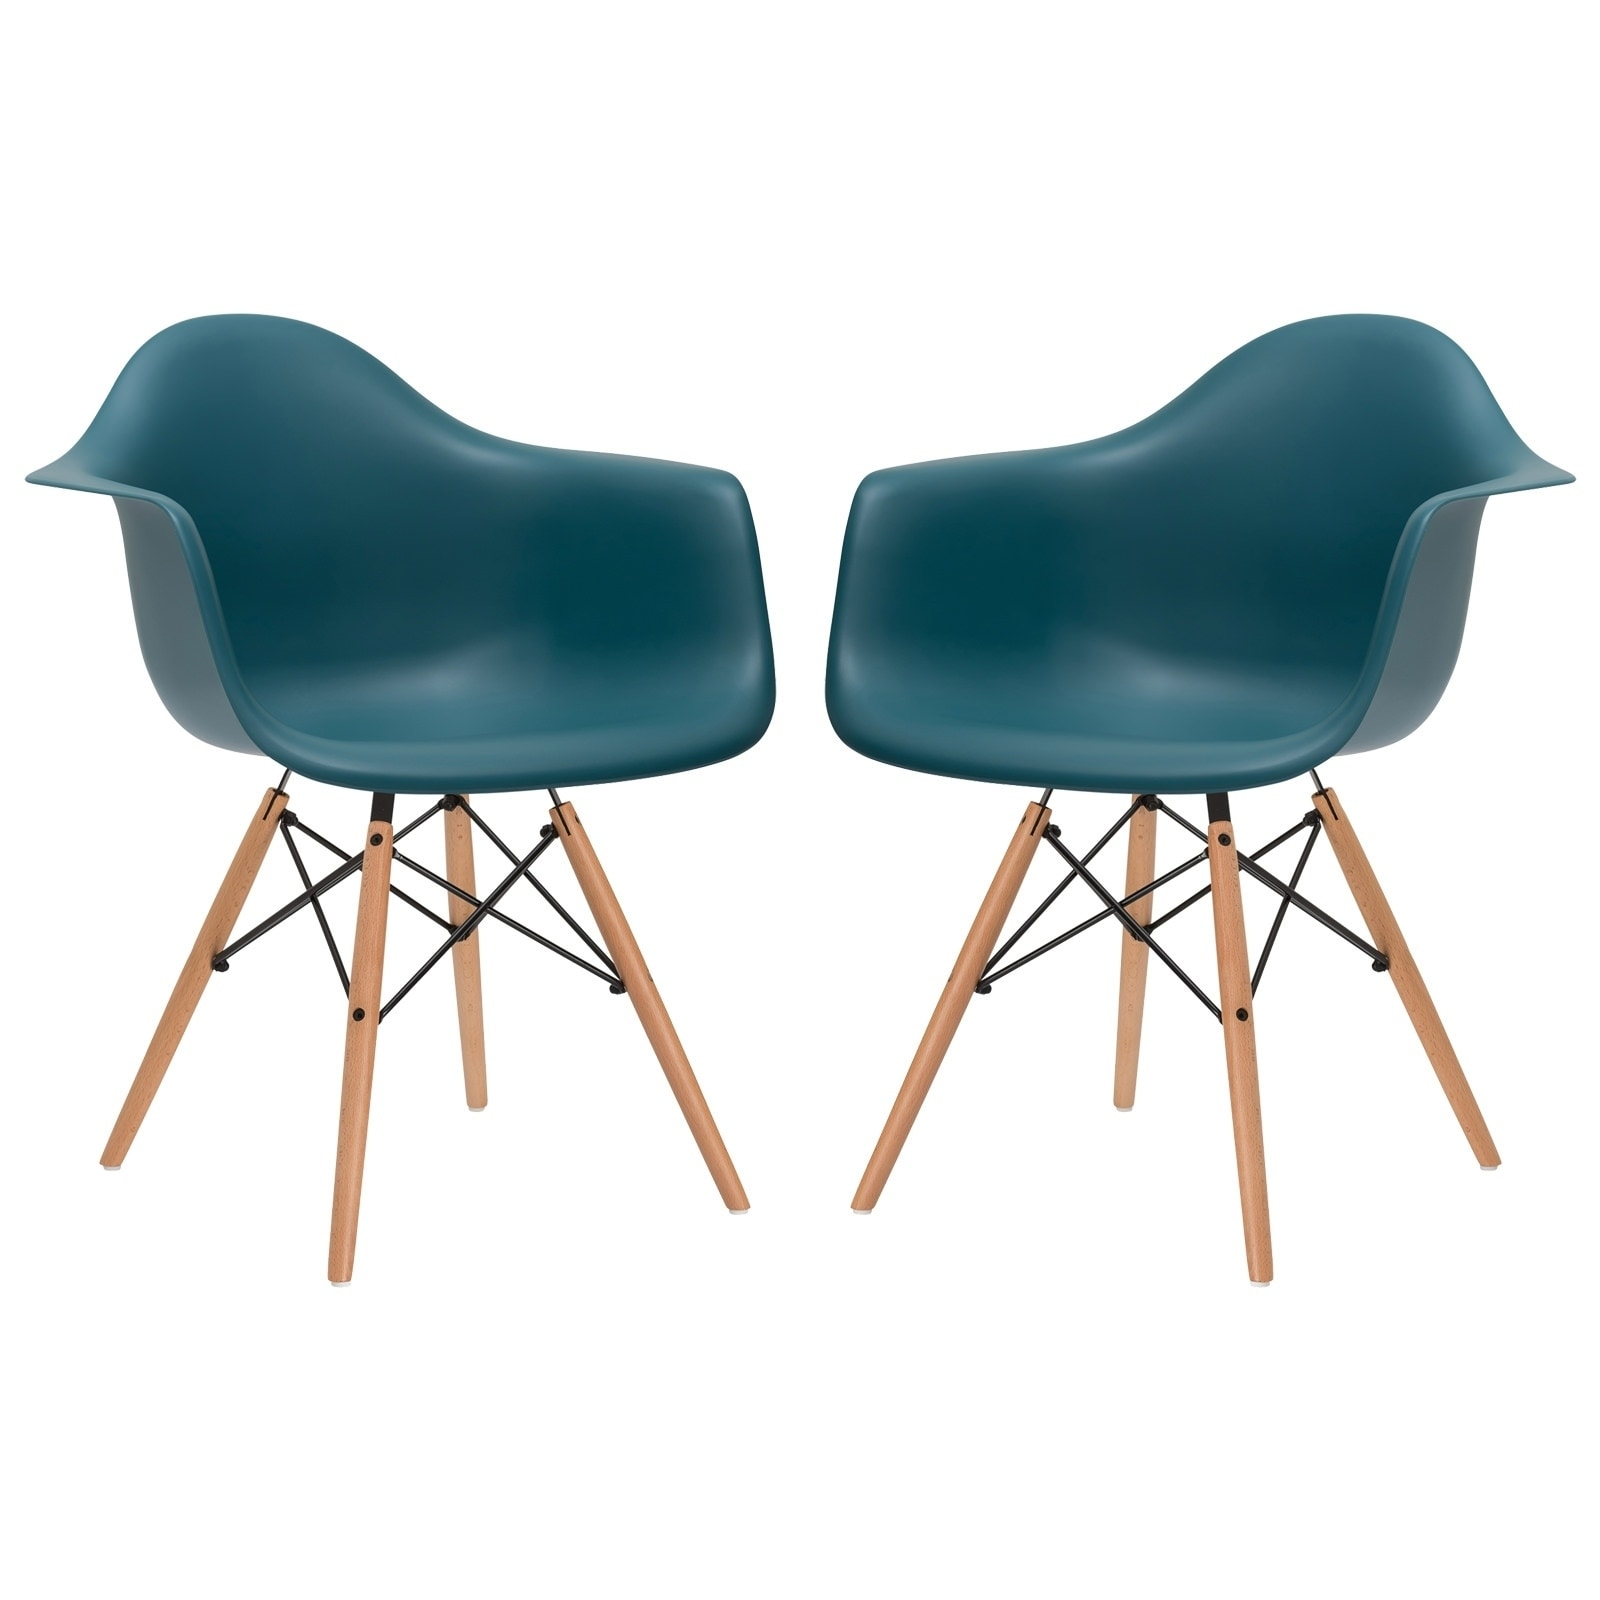 Buy Green Kitchen & Dining Room Chairs Online at Overstock.com | Our ...